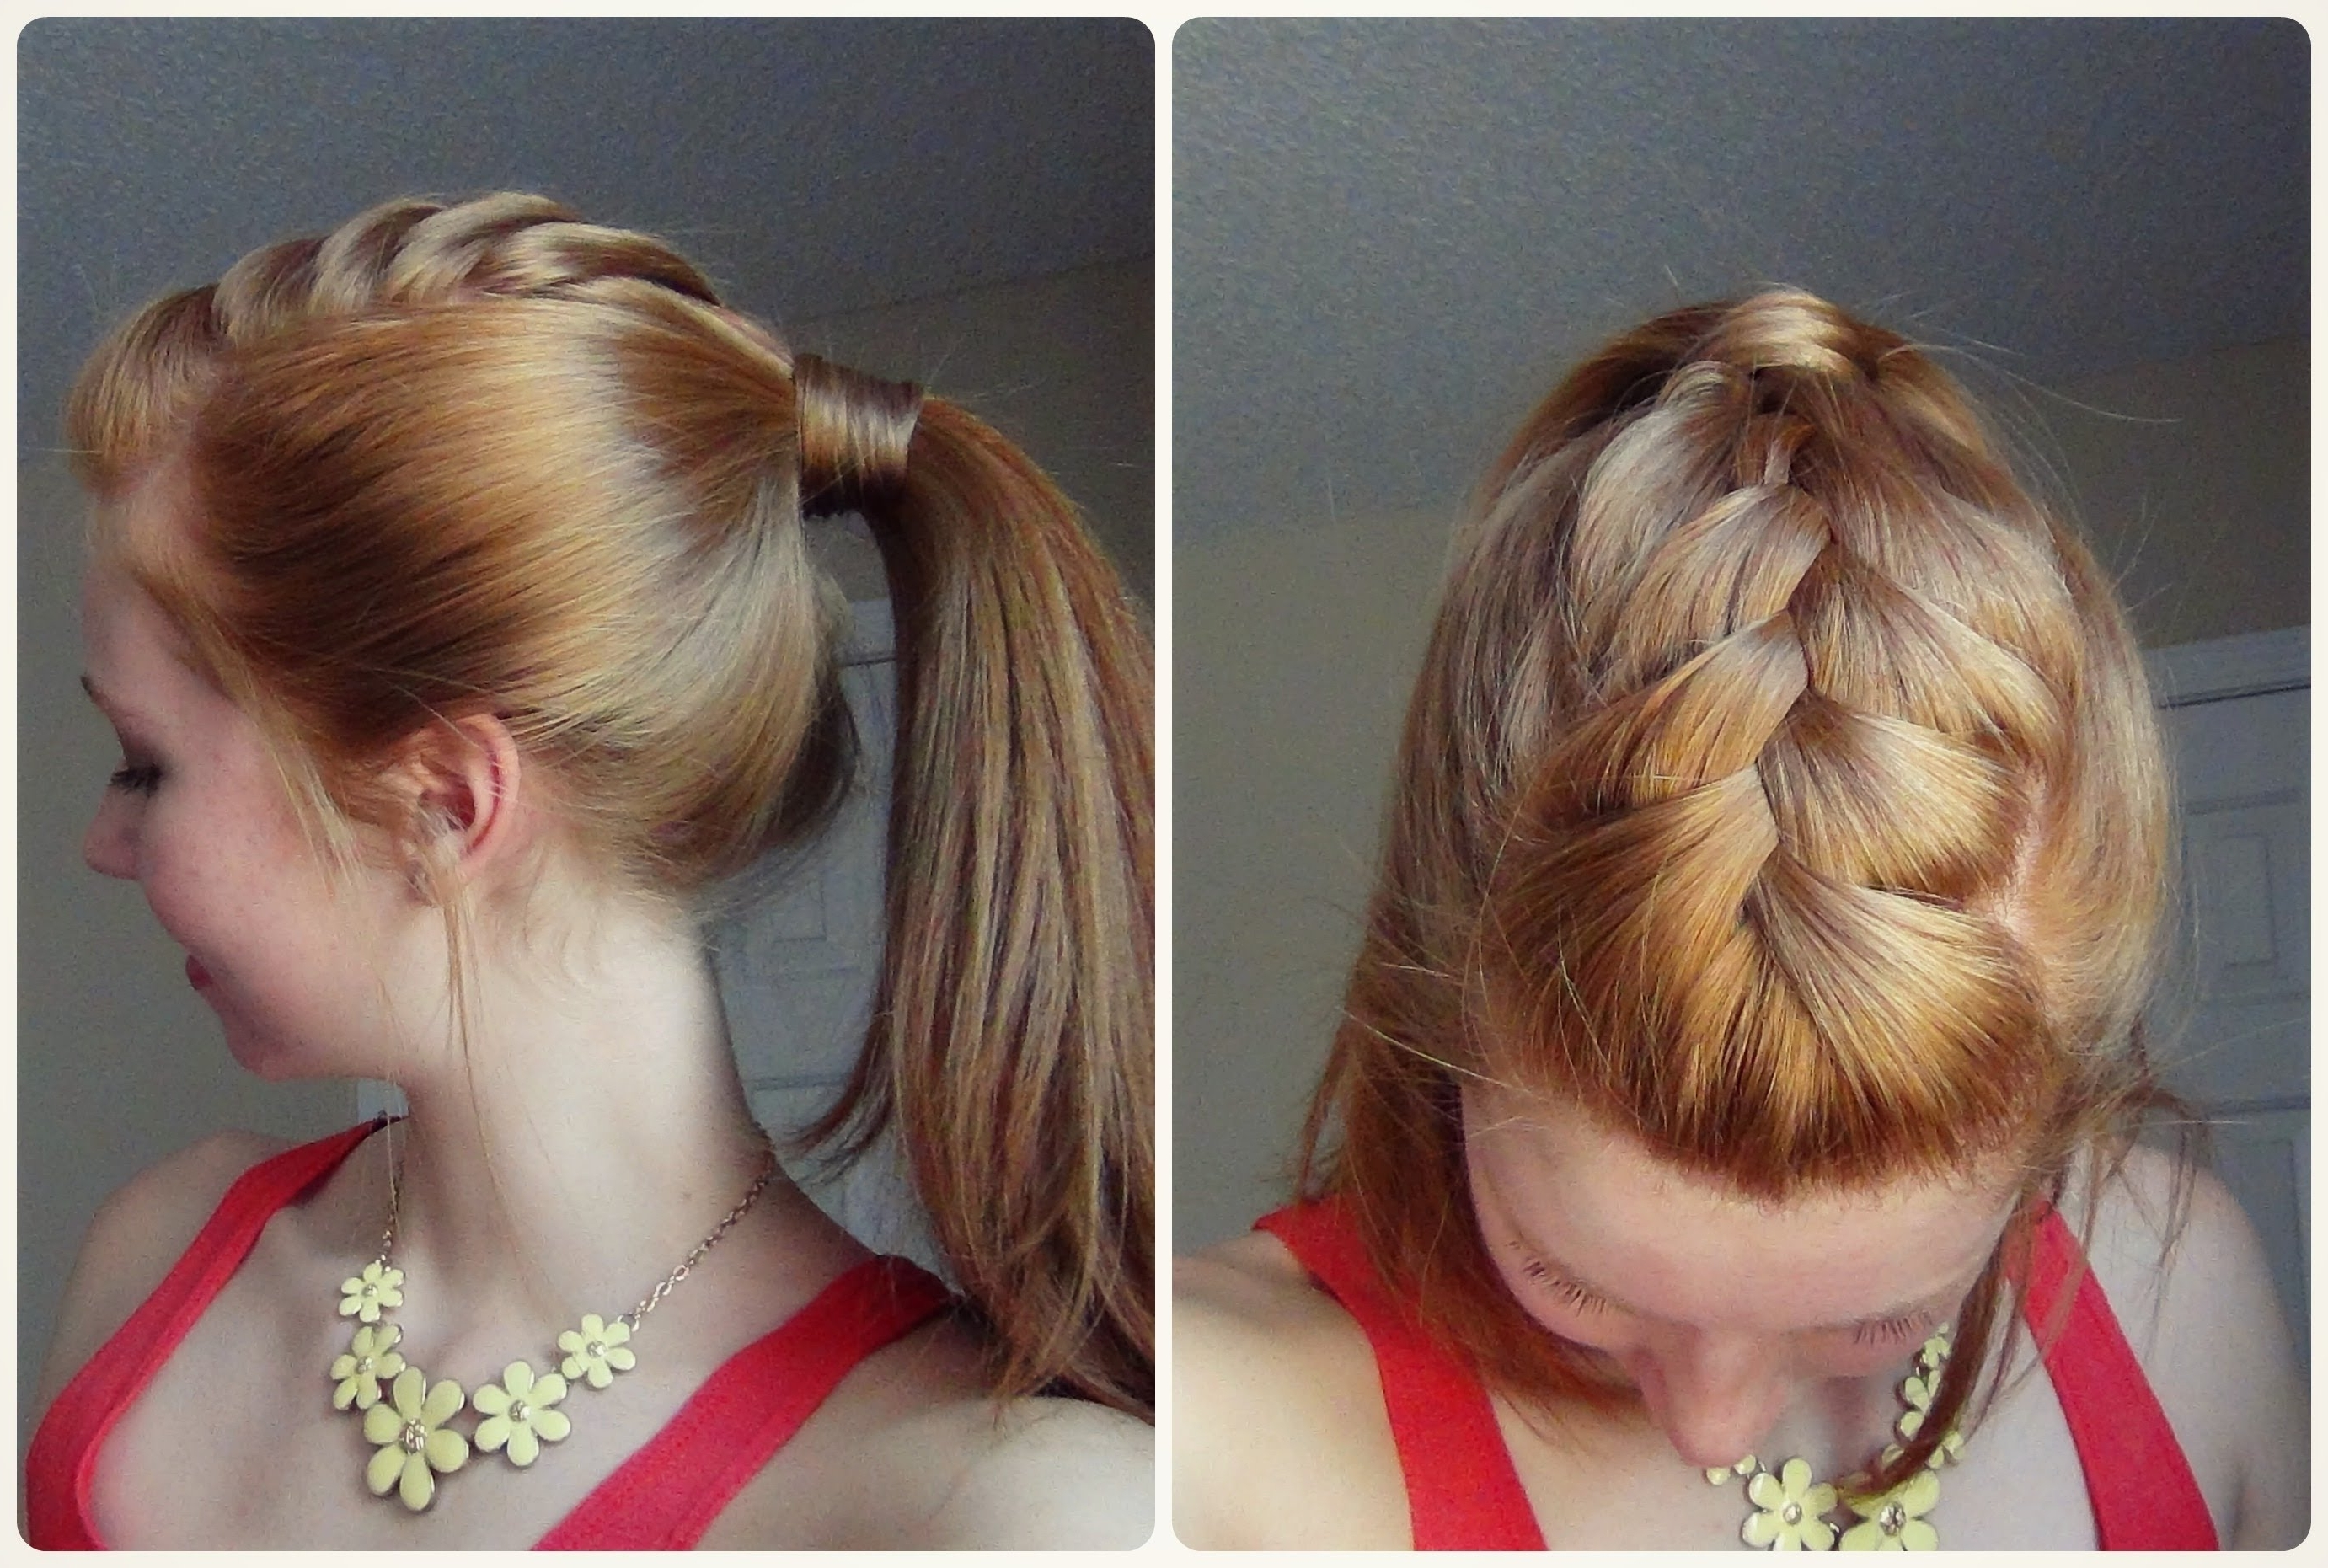 Well Liked Large And Loose Braid Hairstyles With A High Pony In Spring Hairstyle – Ponytail With French Braid! ♥ – Youtube (Gallery 11 of 20)